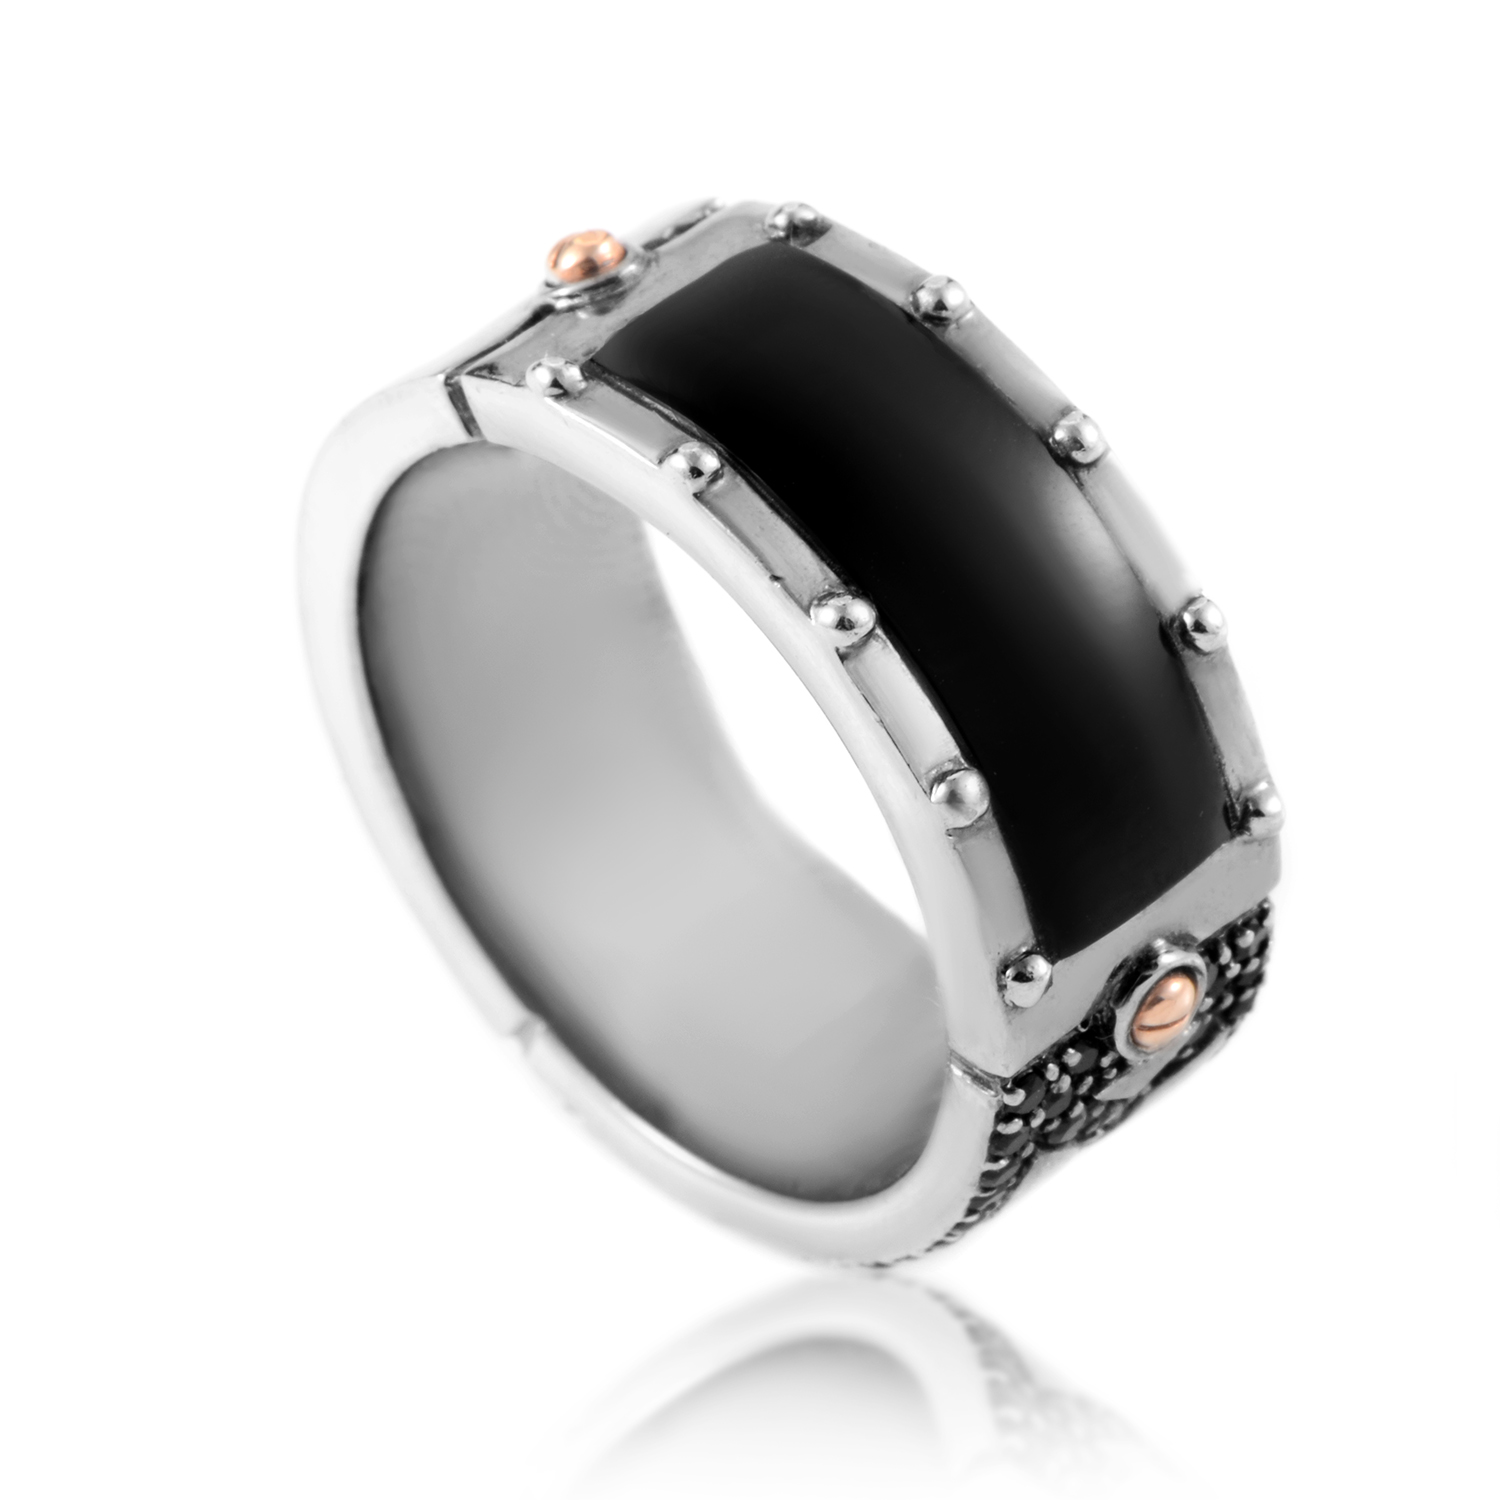 Tokyo Calling Gold-Plated Sterling & Onyx Men's Ring 3012265007